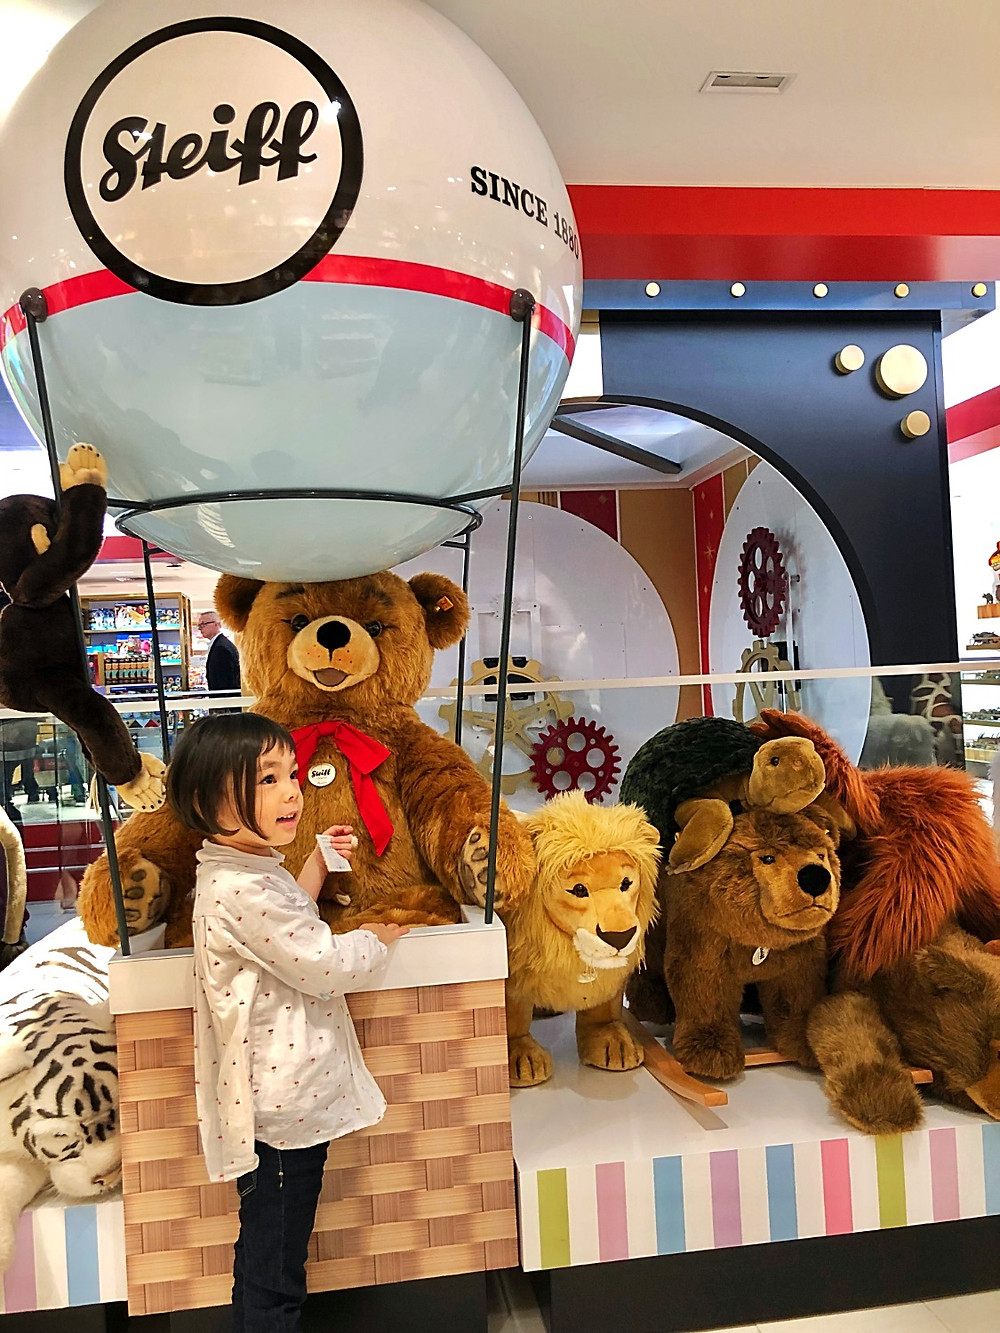 FAO Schwarz, Curious G and Me, 36 Things to Do Indoors this Winter in NYC with your Kids